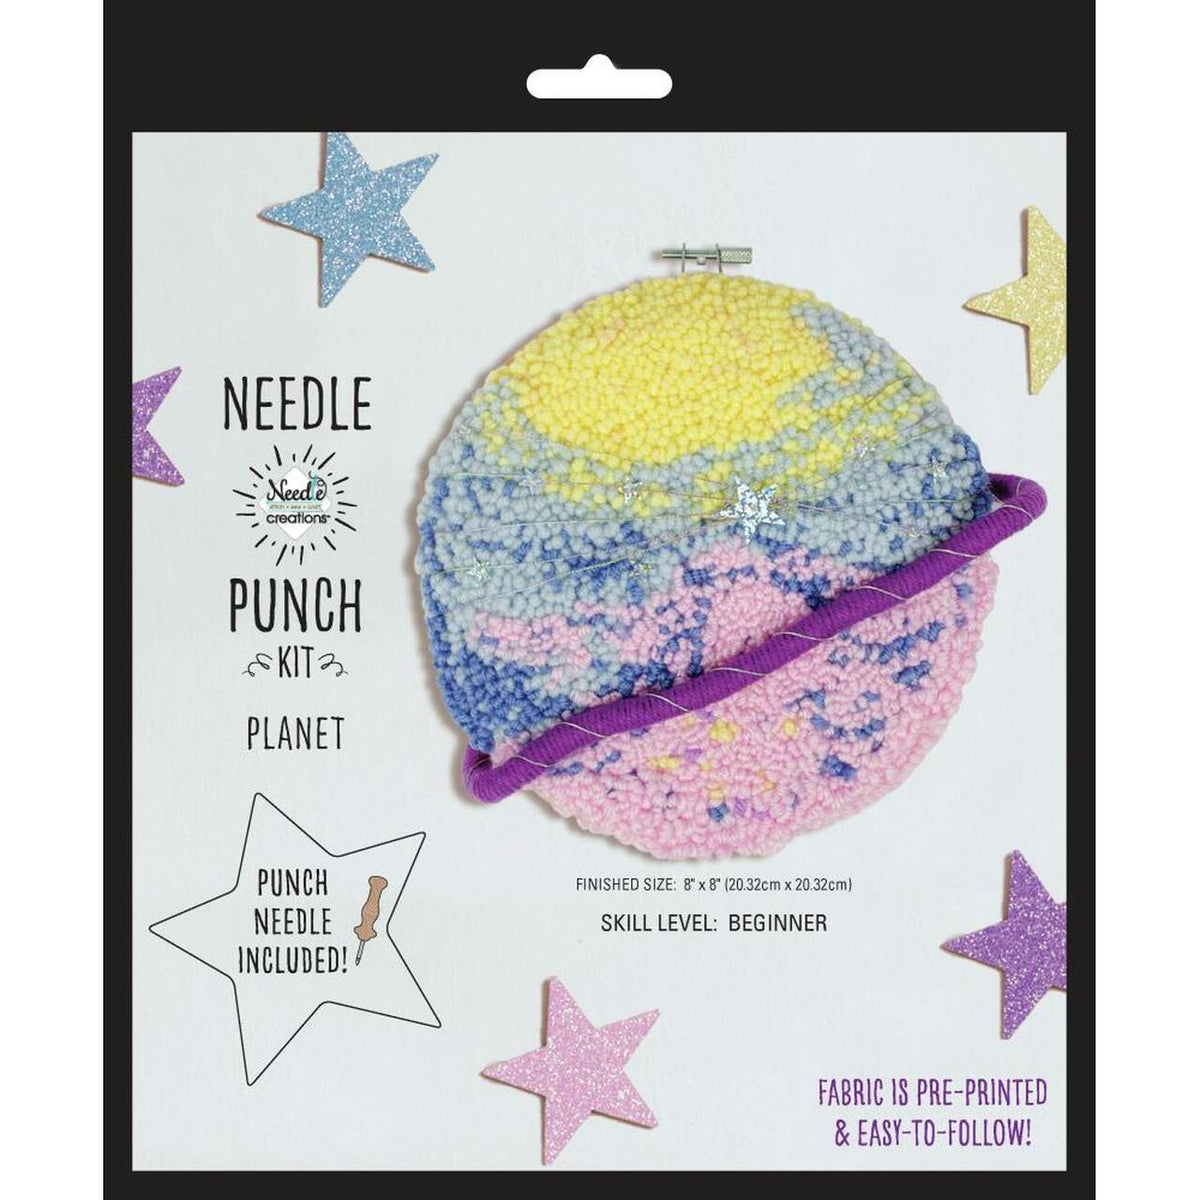 Planet Punch Needle Kit by Needle Creations